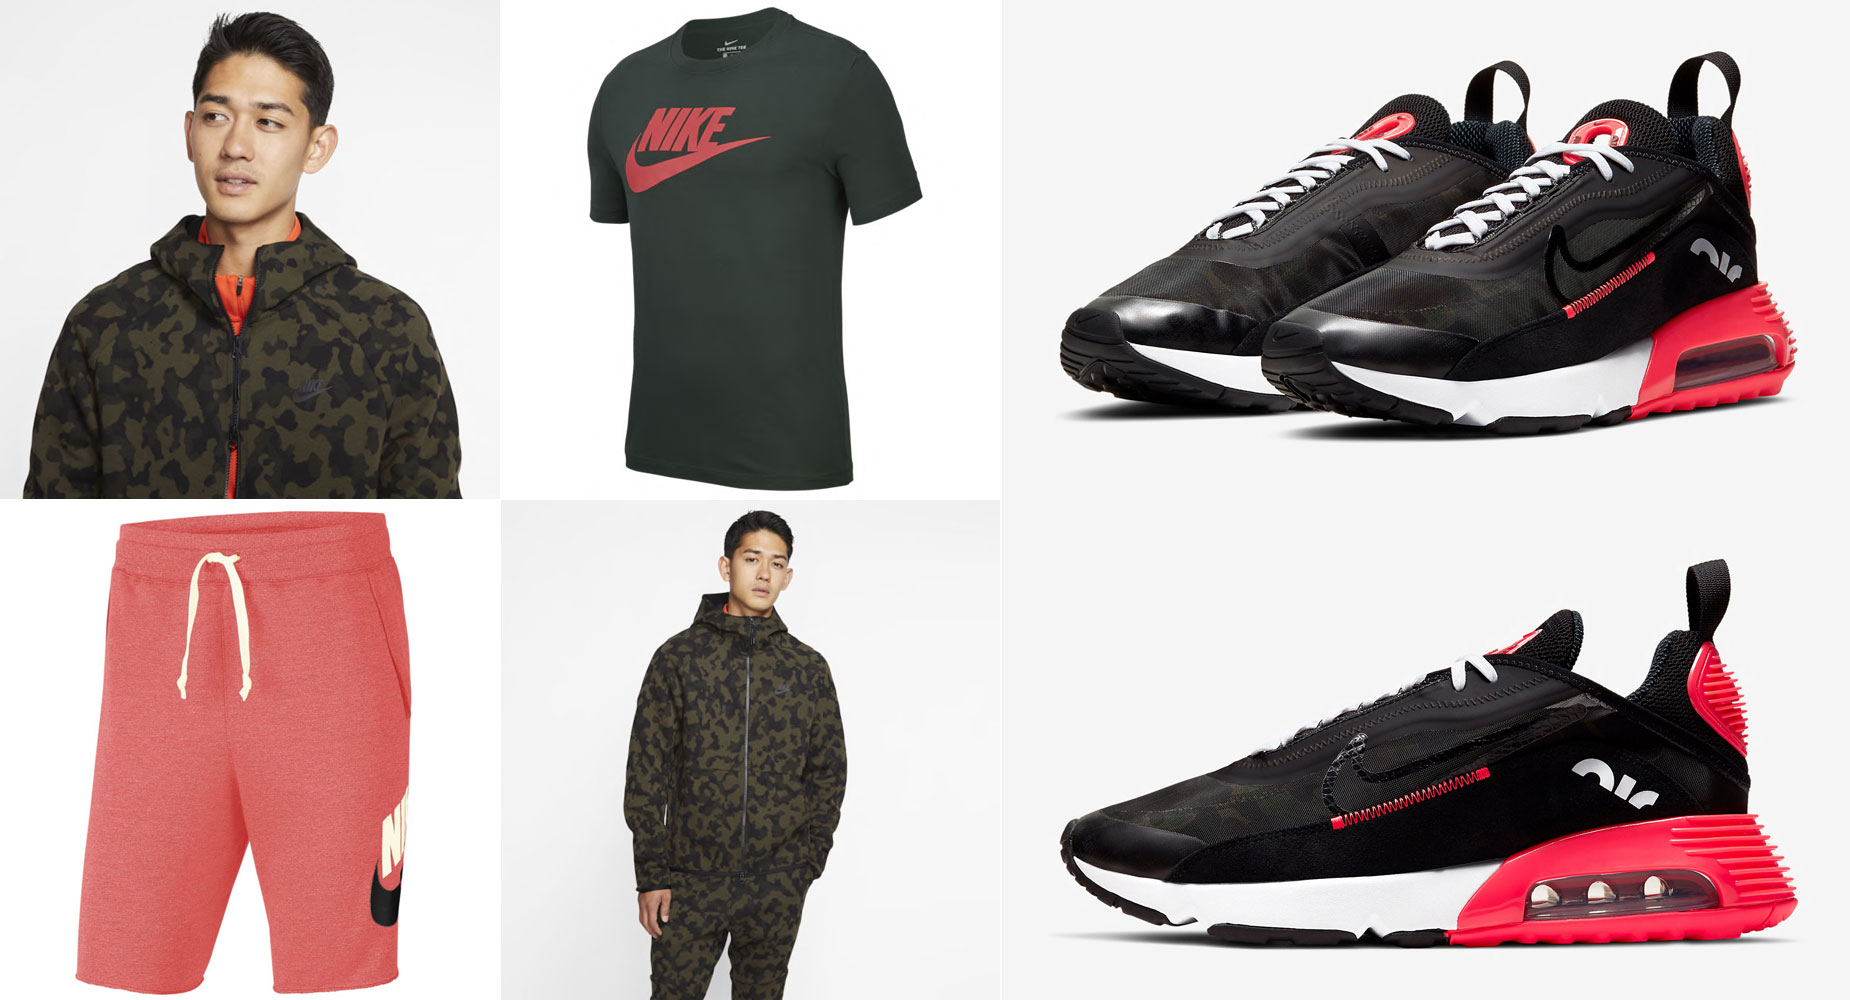 nike-air-max-2090-infrared-duck-camo-clothing-outfits